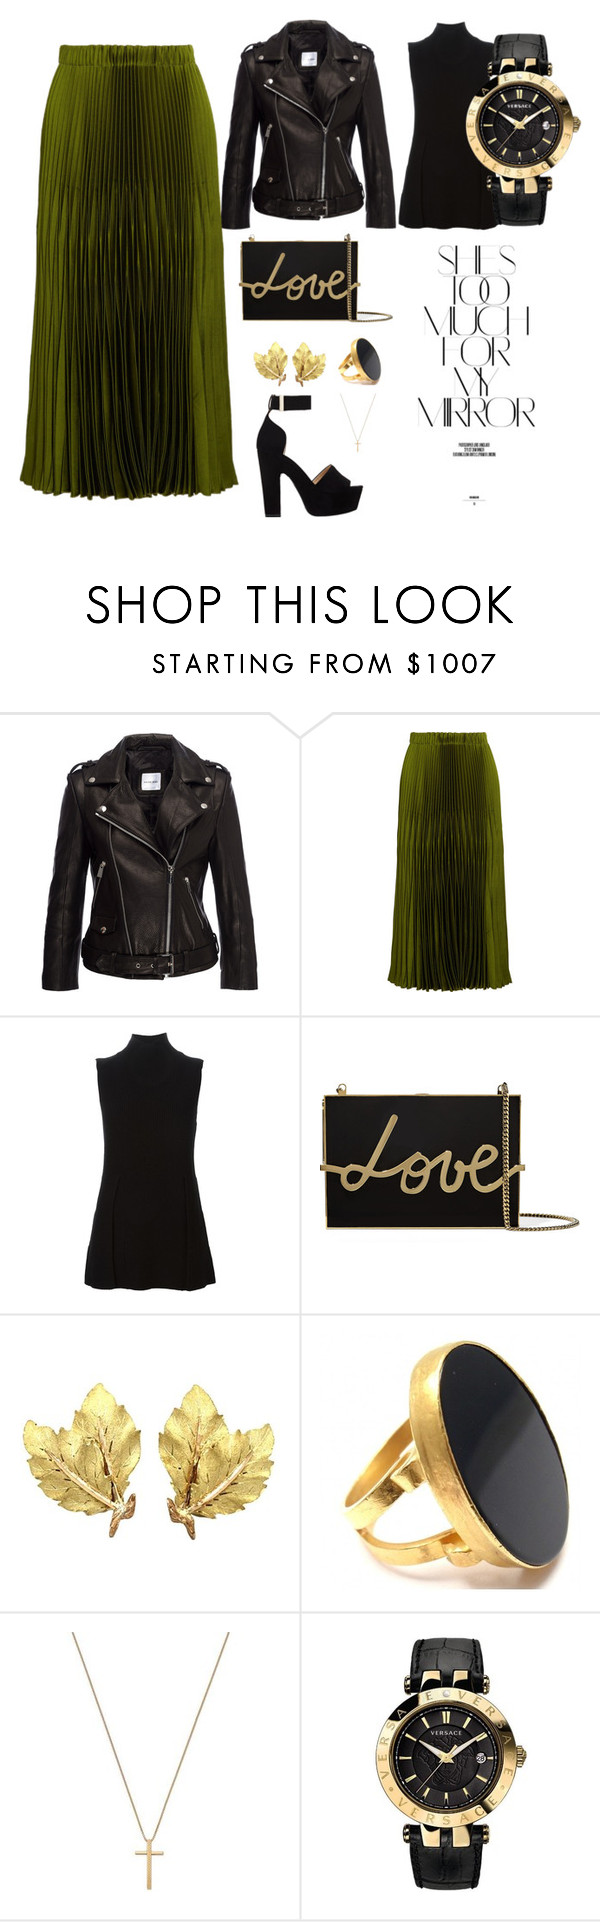 """""""It's all about that skirt"""" by margaery-tyrel ❤ liked on Polyvore featuring Gucci, Proenza Schouler, Lanvin, Buccellati, Yossi Harari, Versace, Rika and Nicholas Kirkwood"""